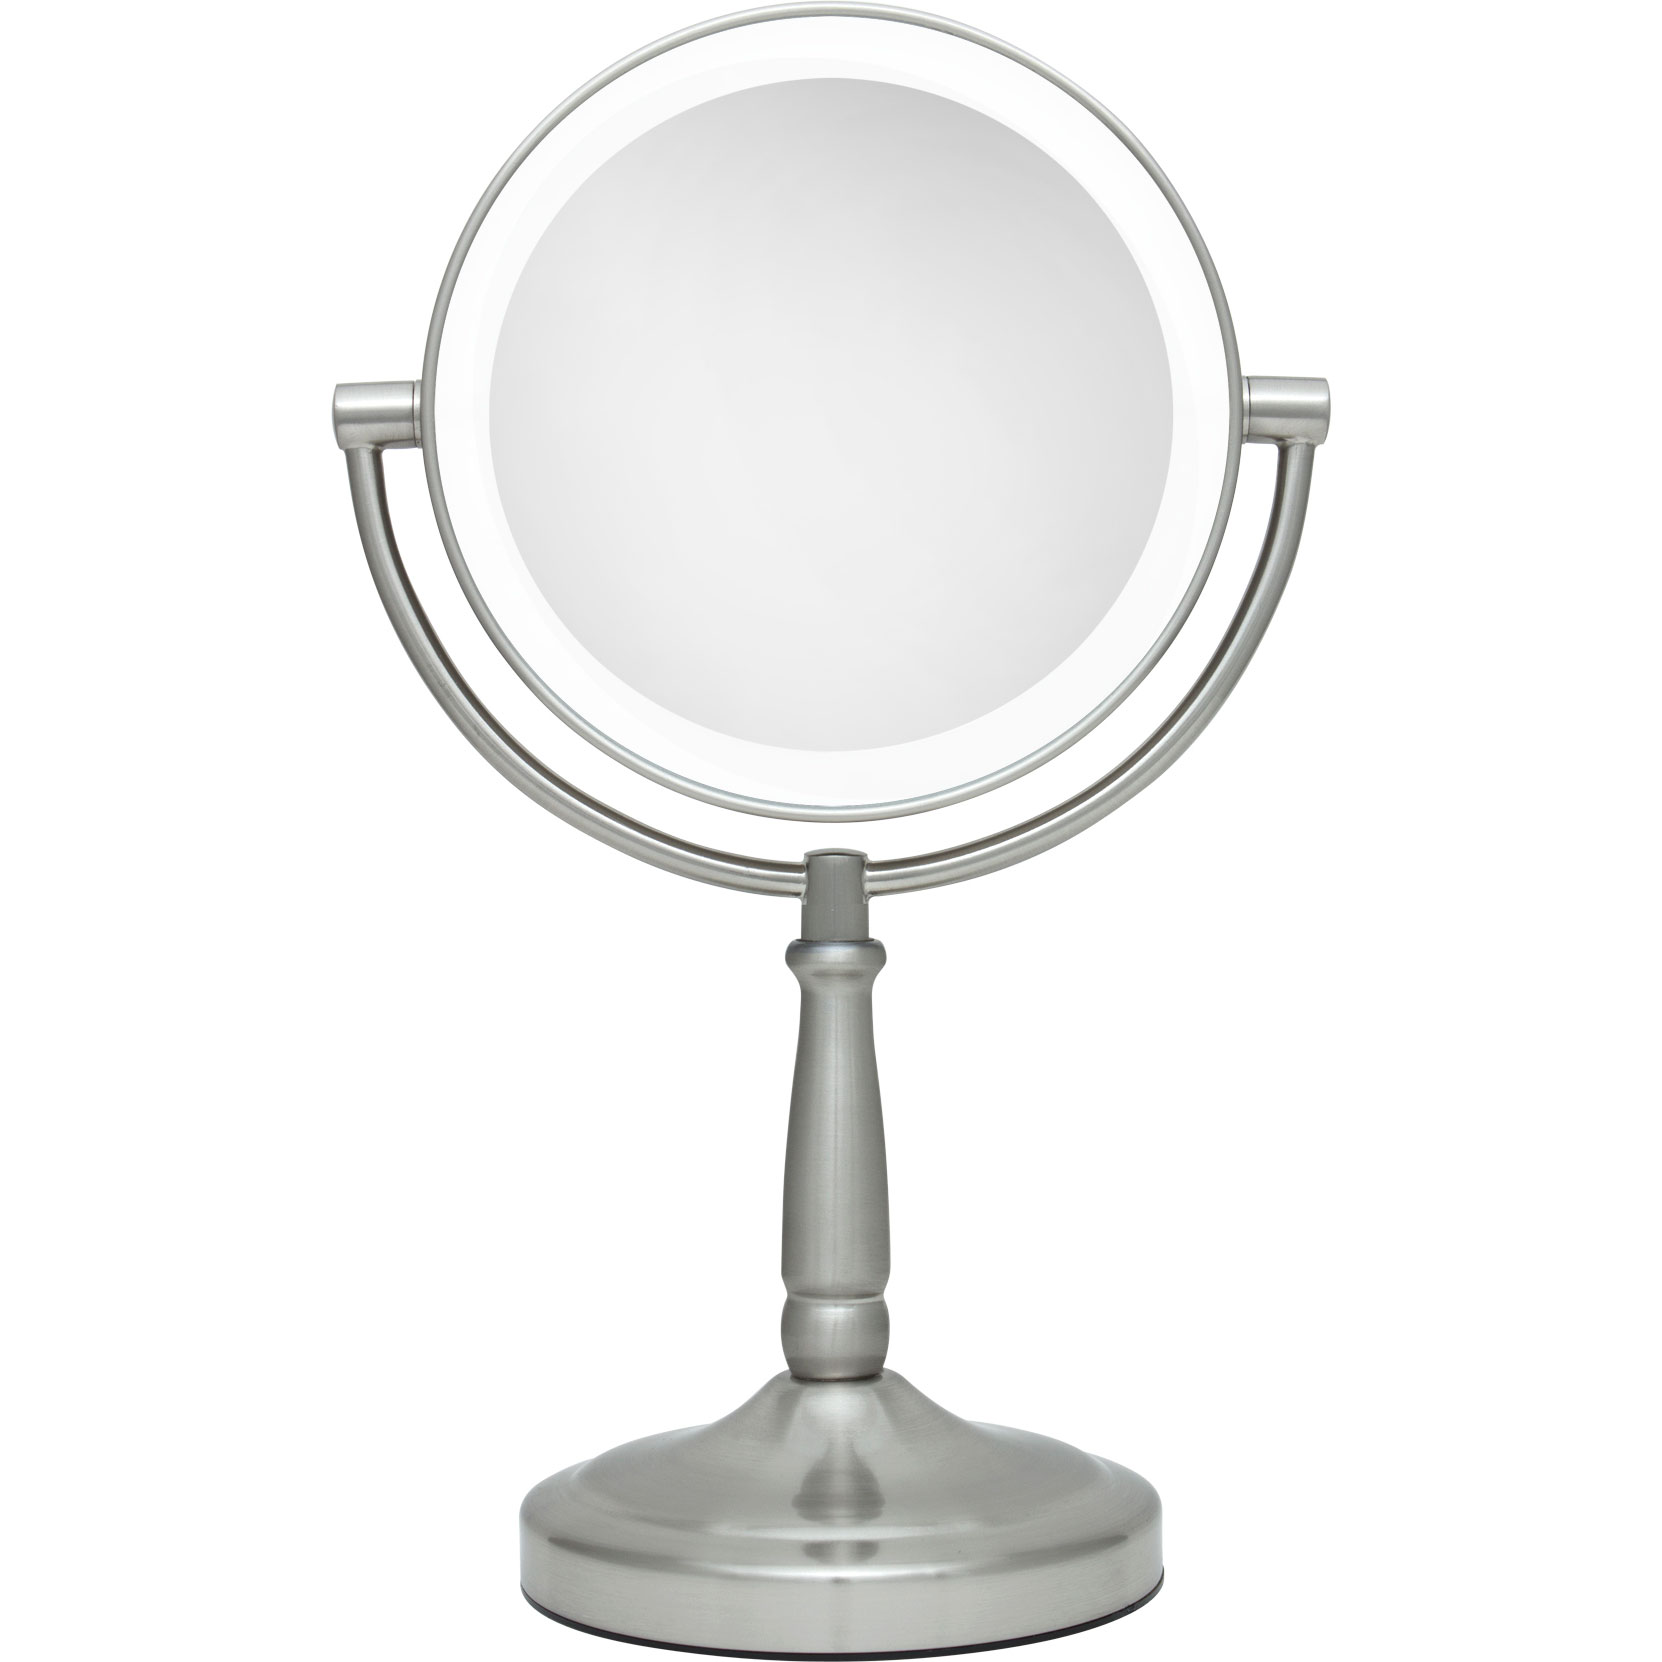 Vanity Lights In Mirror : 5x/1x Cordless Dual Sided LED Light Vanity Mirror by Zadro LEDV45